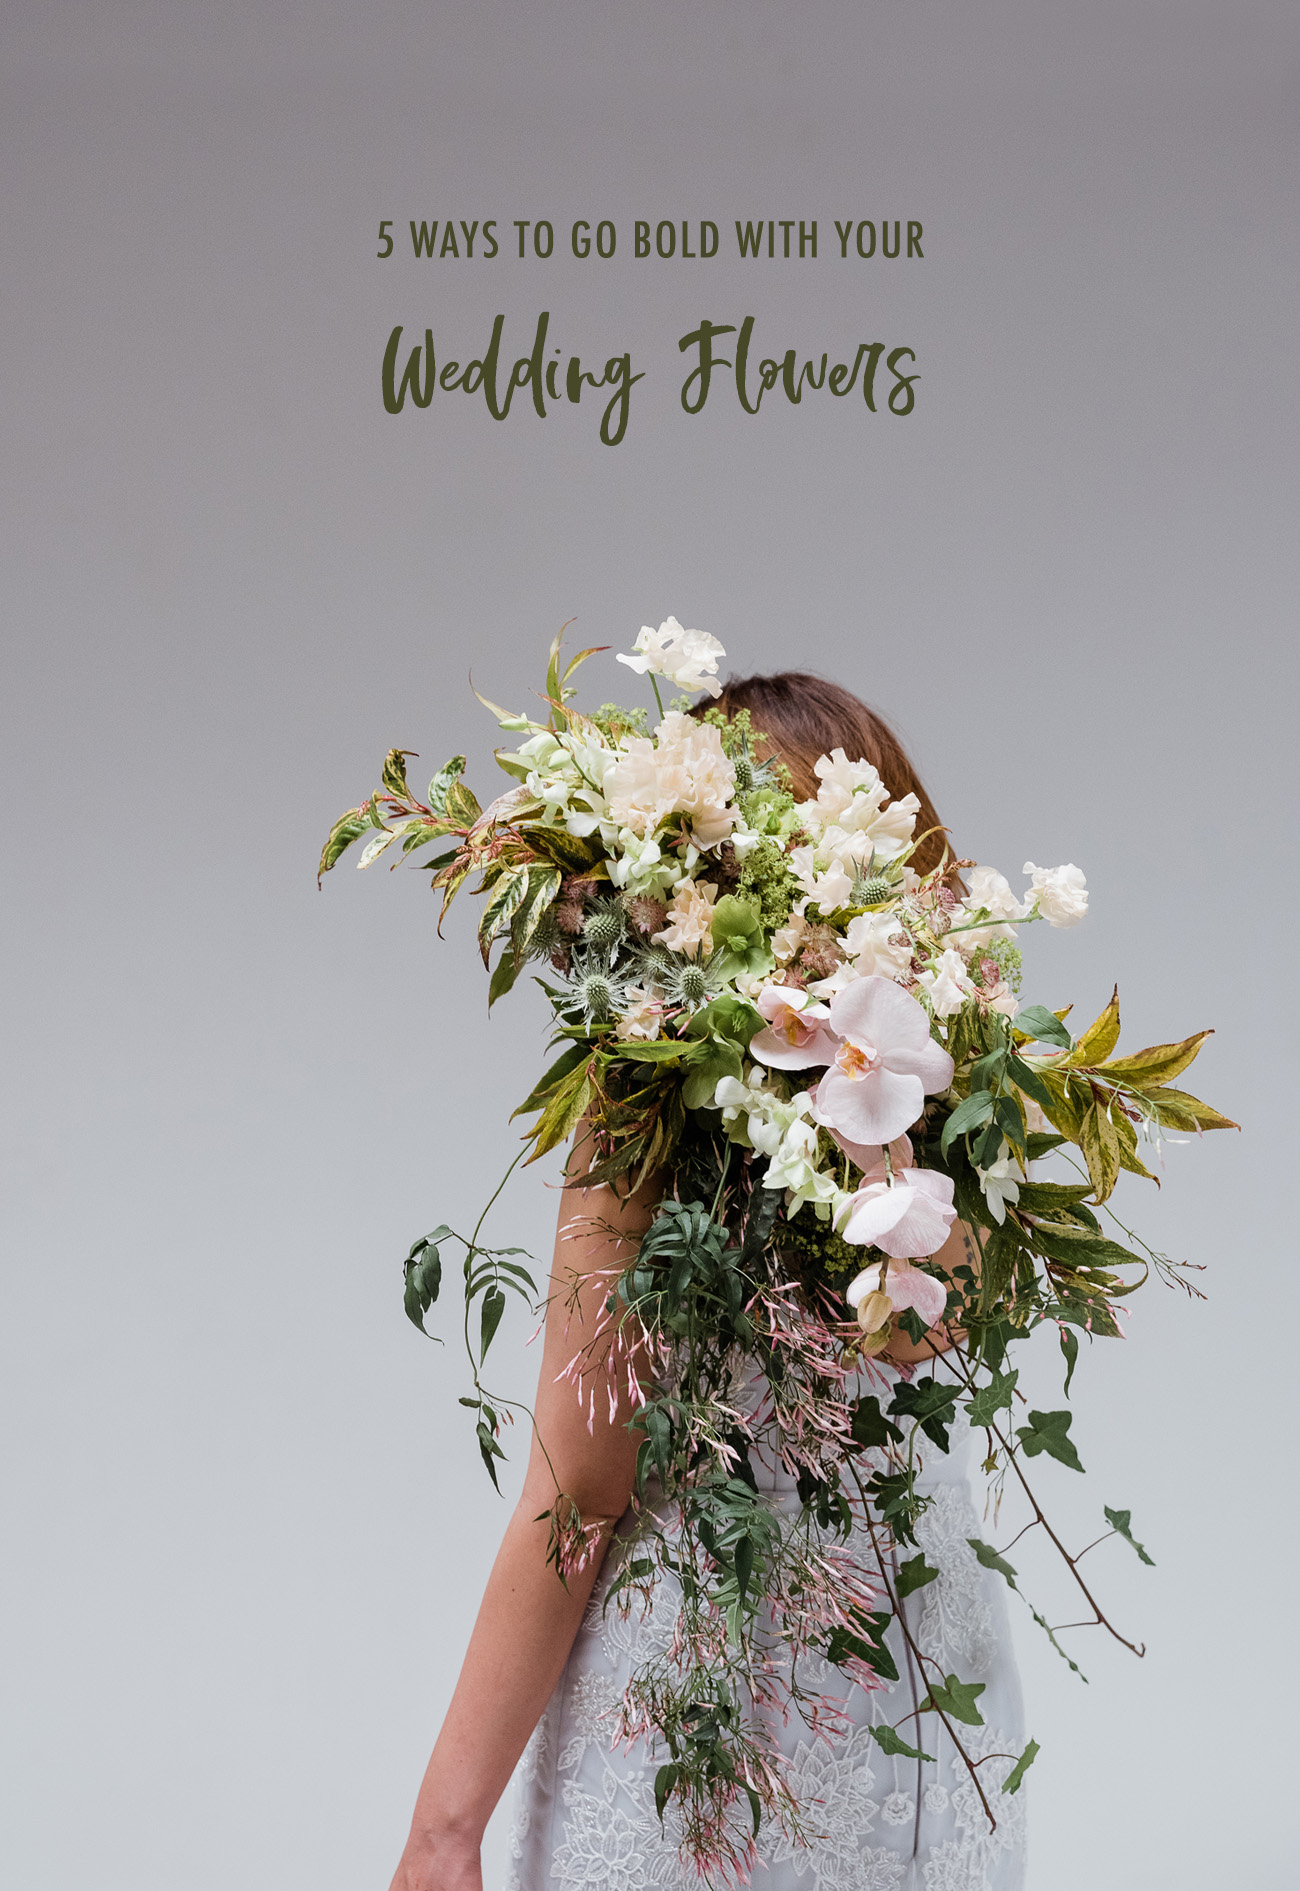 5 Ways to Go Bold with your Wedding Flowers